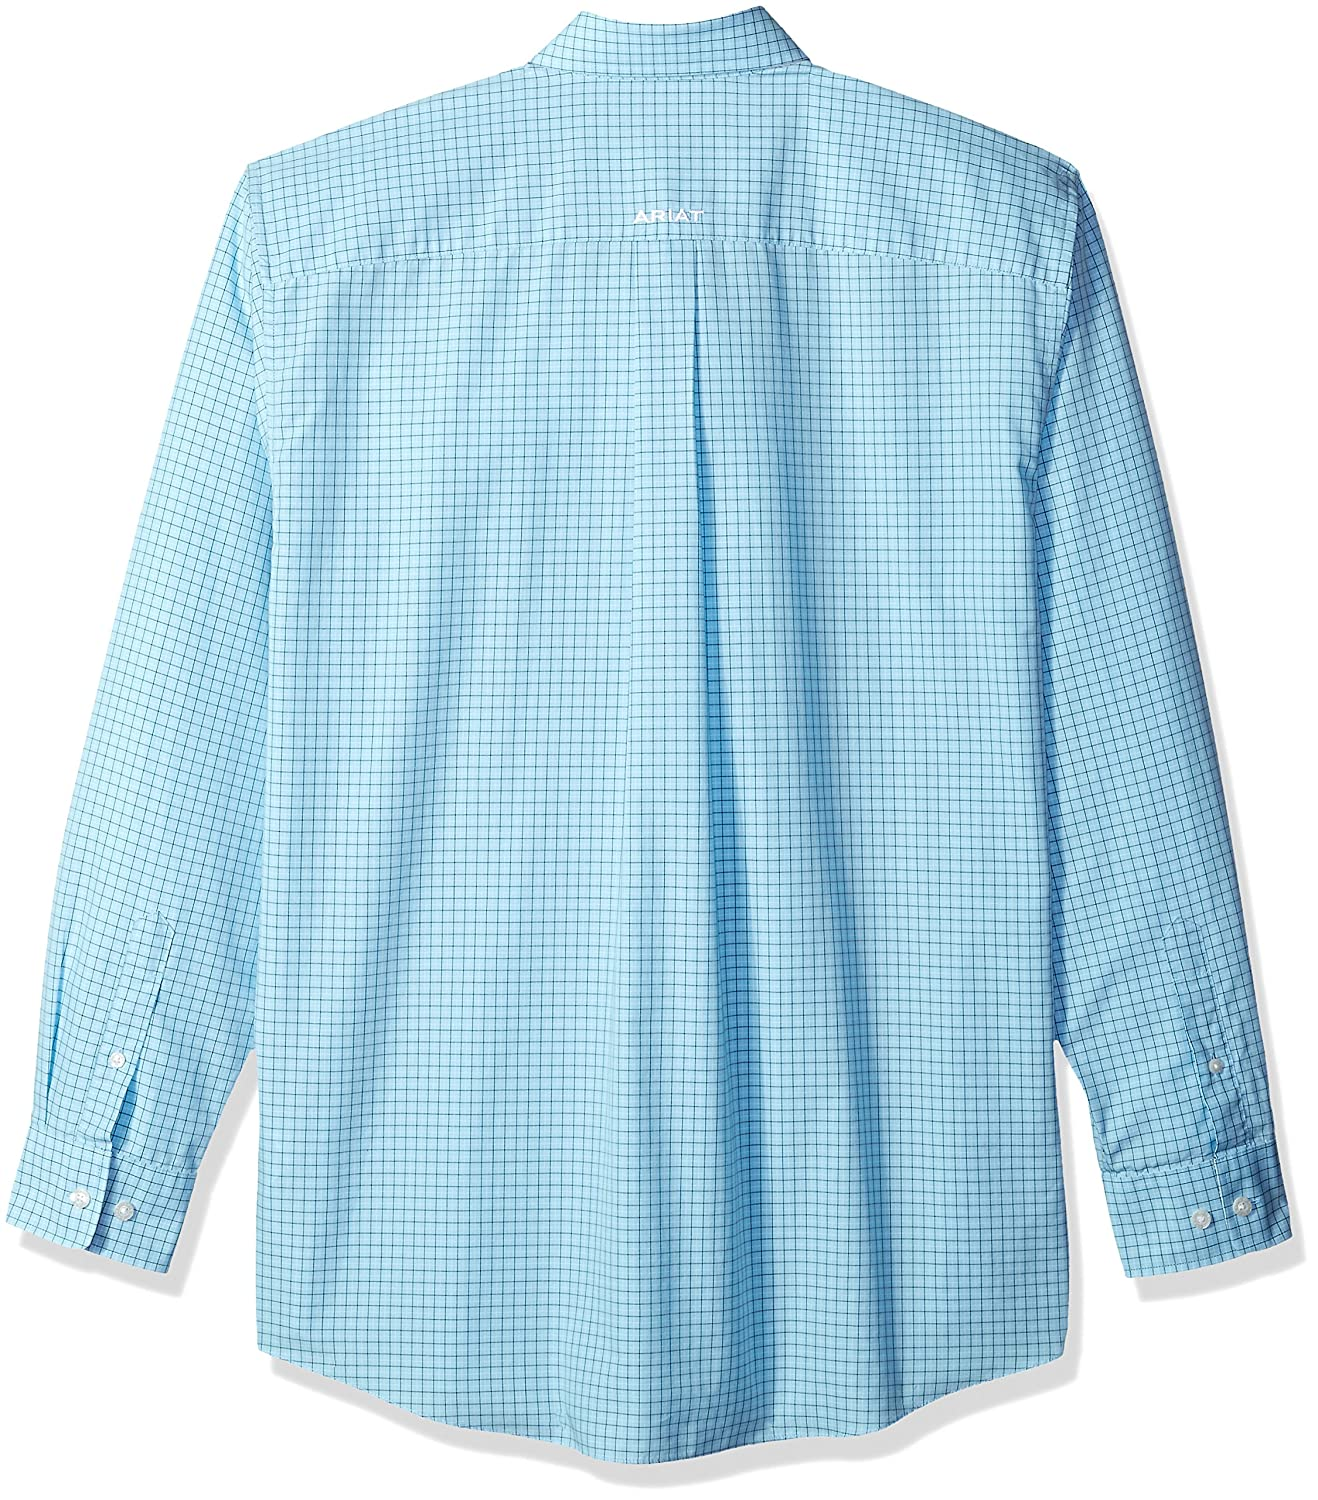 Ariat Mens Big and Tall Classic Fit Wrinkle Free Shirt